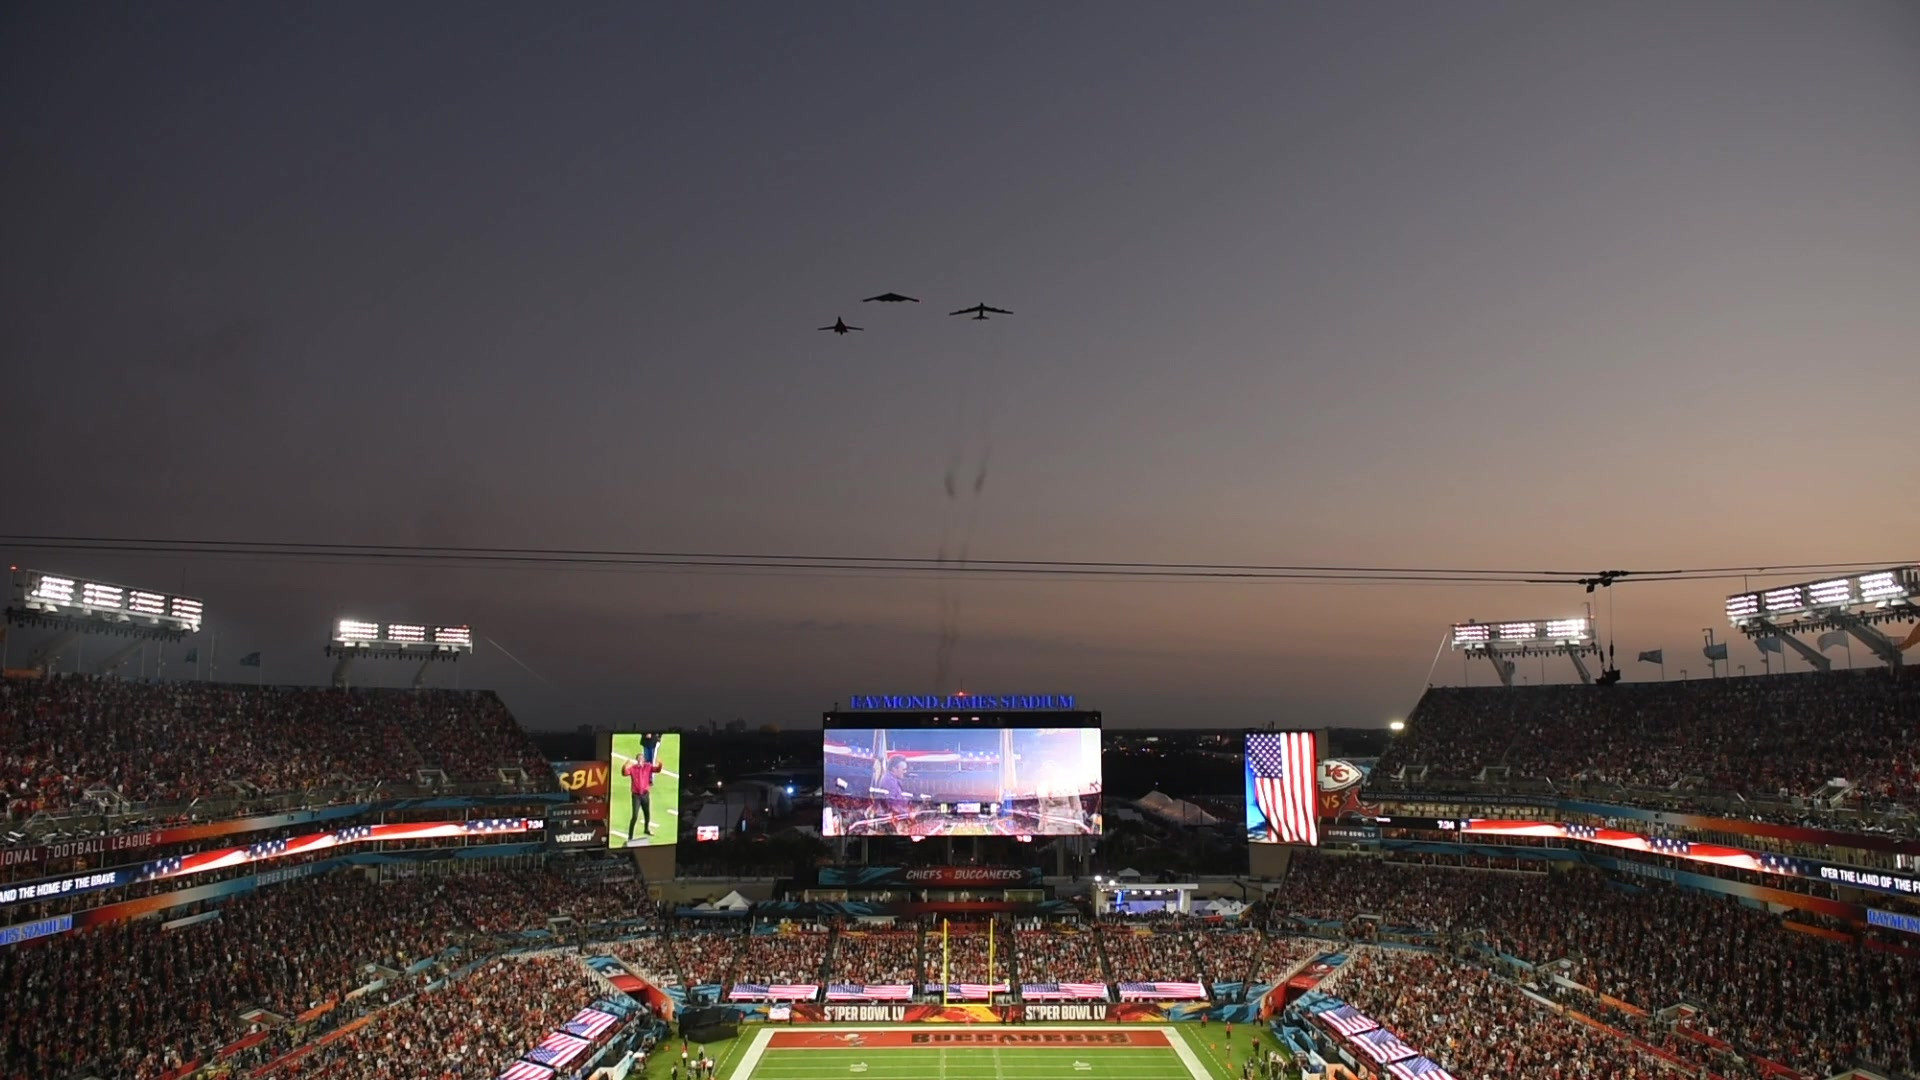 Air Force Global Strike Command bombers perform the Super Bowl LV flyover at Raymond James Stadium in Tampa, Fla., Jan. 7, 2021. The trifecta was the first of its kind as it included a B-1B Lancer from Ellsworth Air Force Base, S.D., a B-2 Spirit from Whiteman AFB, Mo., and a B-52H Stratofortress from Minot AFB, N.D. (U.S. Air Force video by Tech. Sgt. Jensen Stidham)